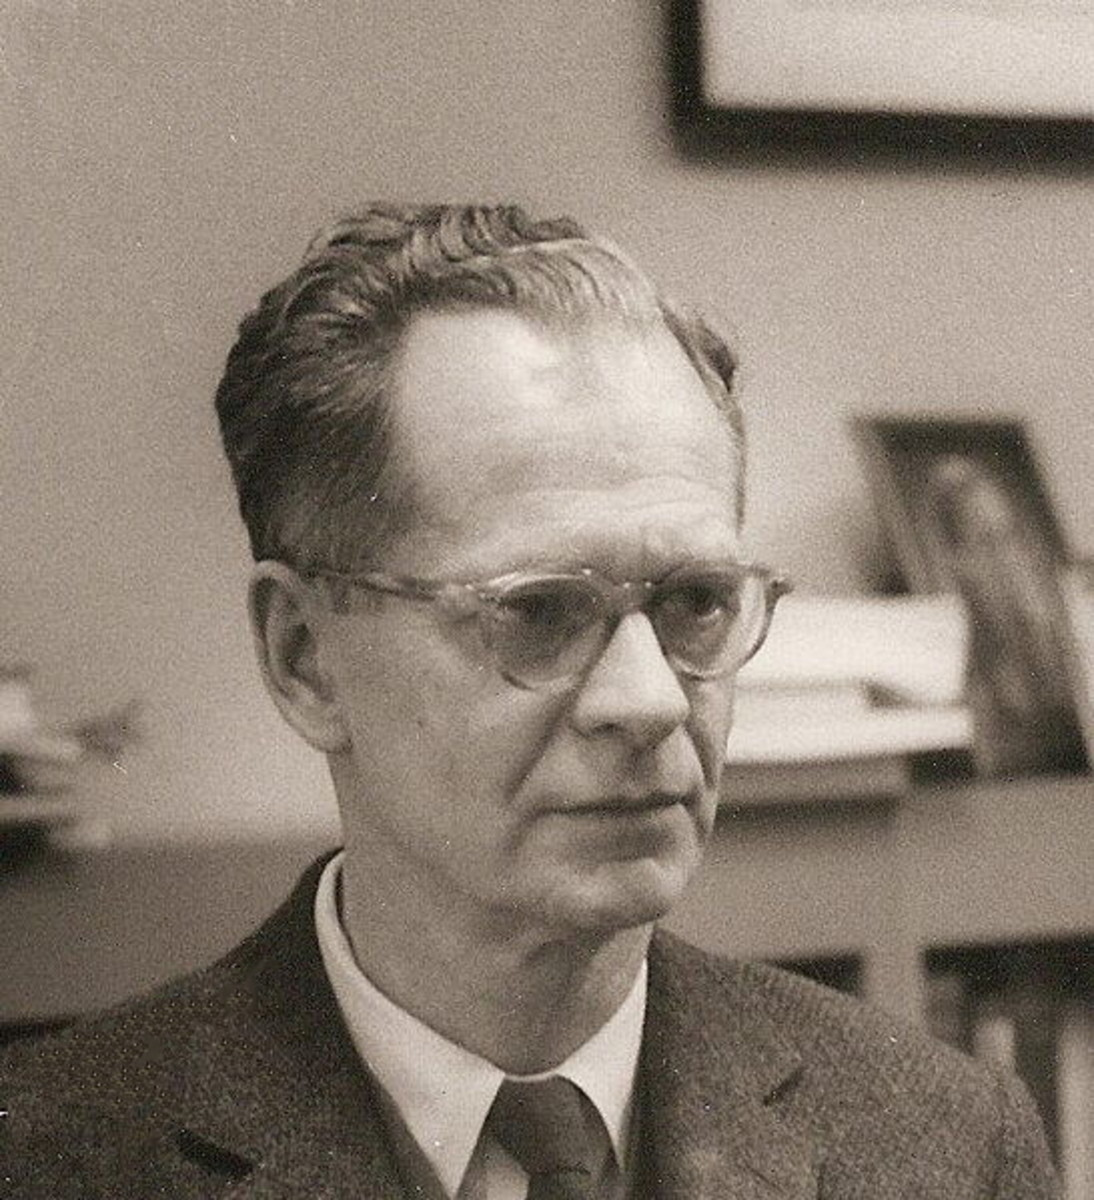 Skinner at Harvard c 1950. Image from Wikipedia